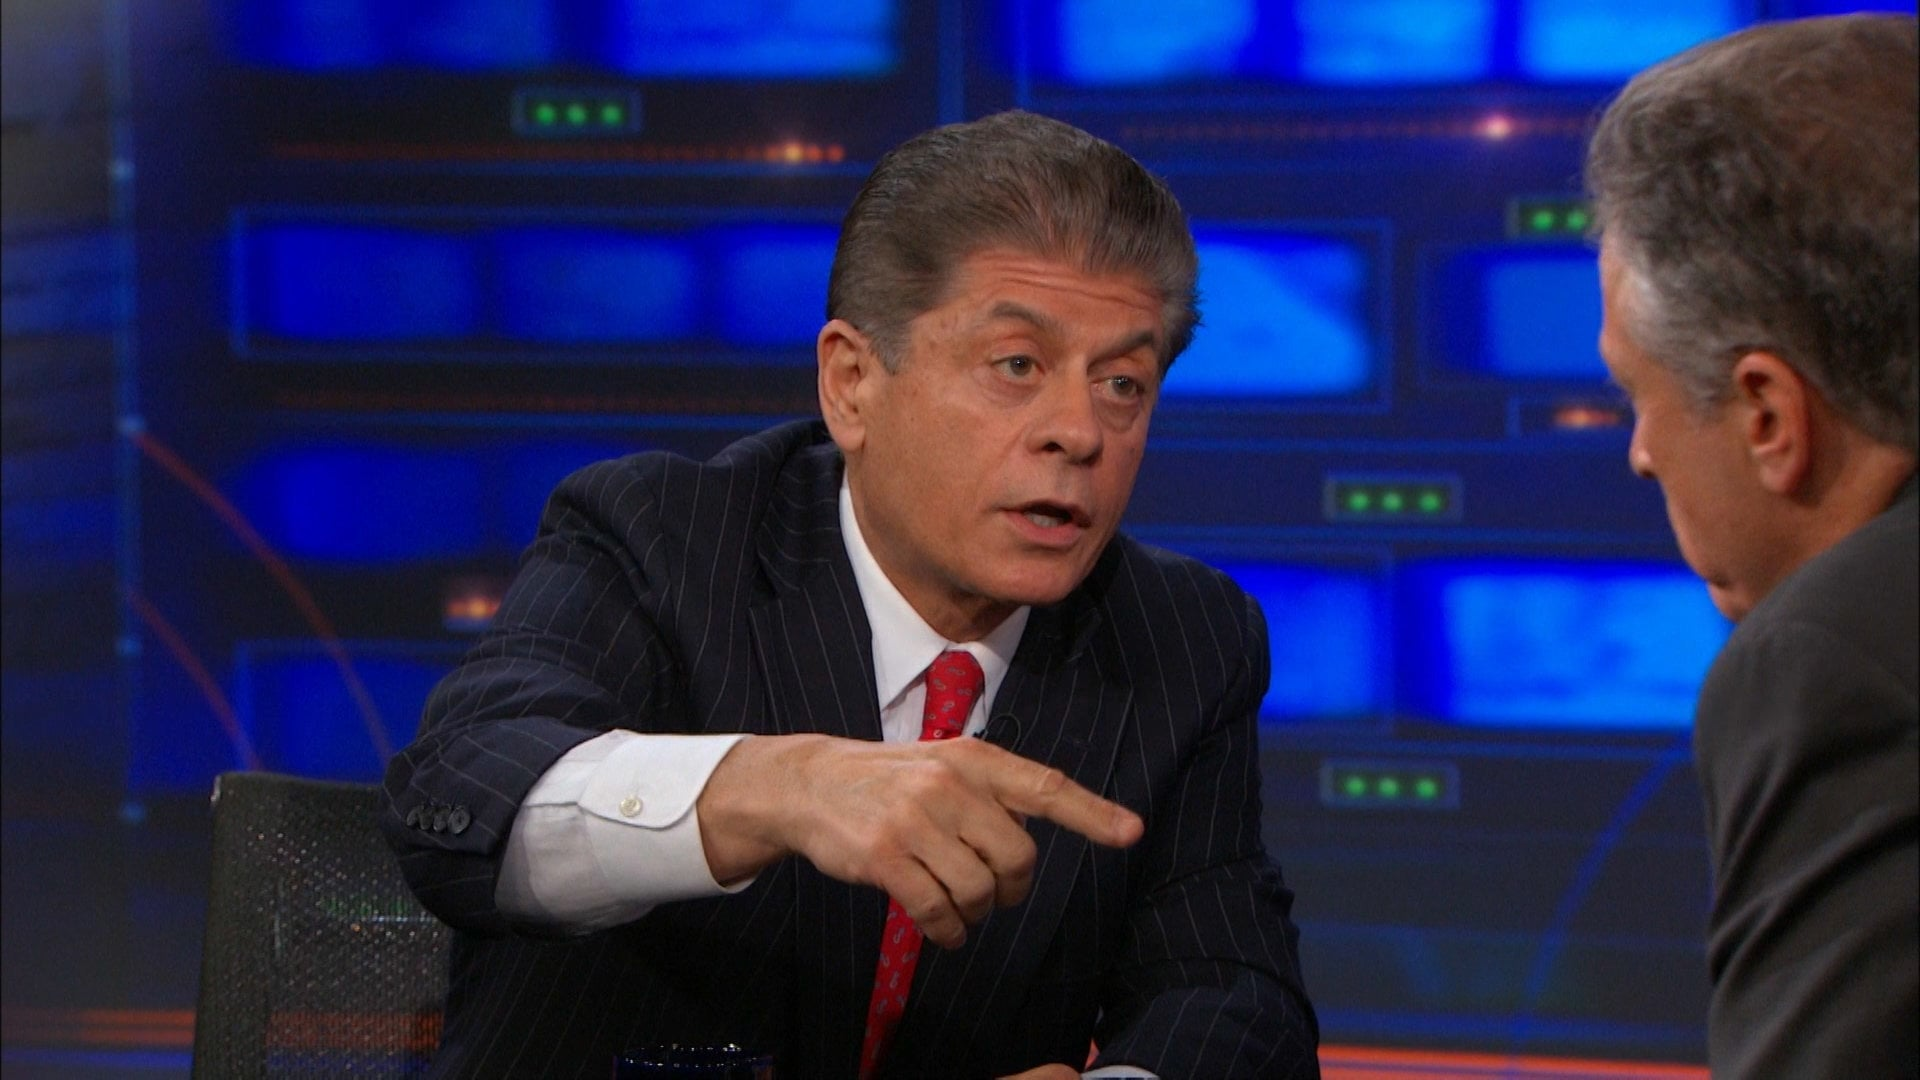 The Daily Show with Trevor Noah Season 20 :Episode 29  Andrew Napolitano